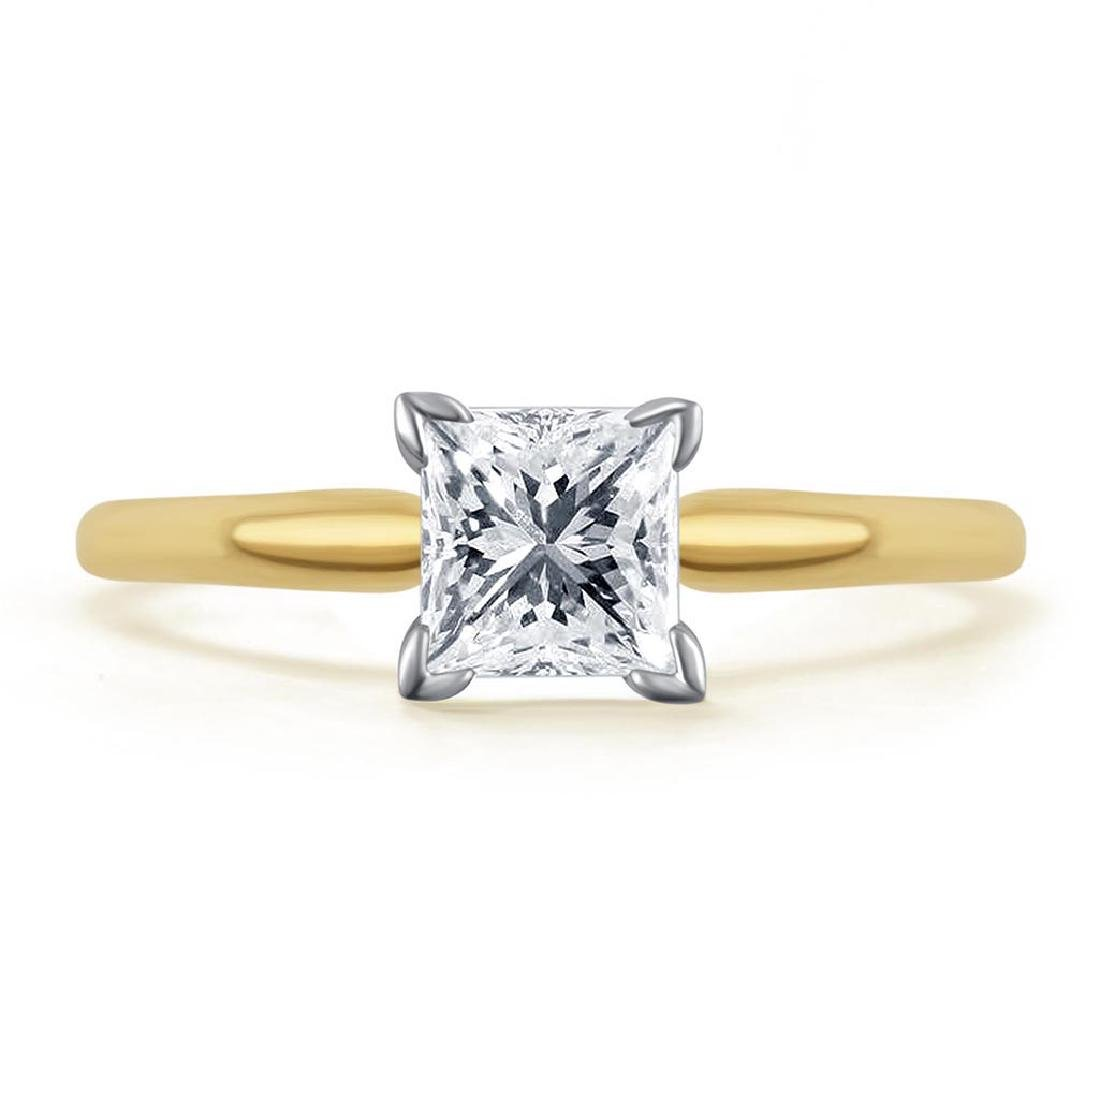 CERTIFIED 0.7 CTW PRINCESS I/SI2 SOLITAIRE RING IN 14K